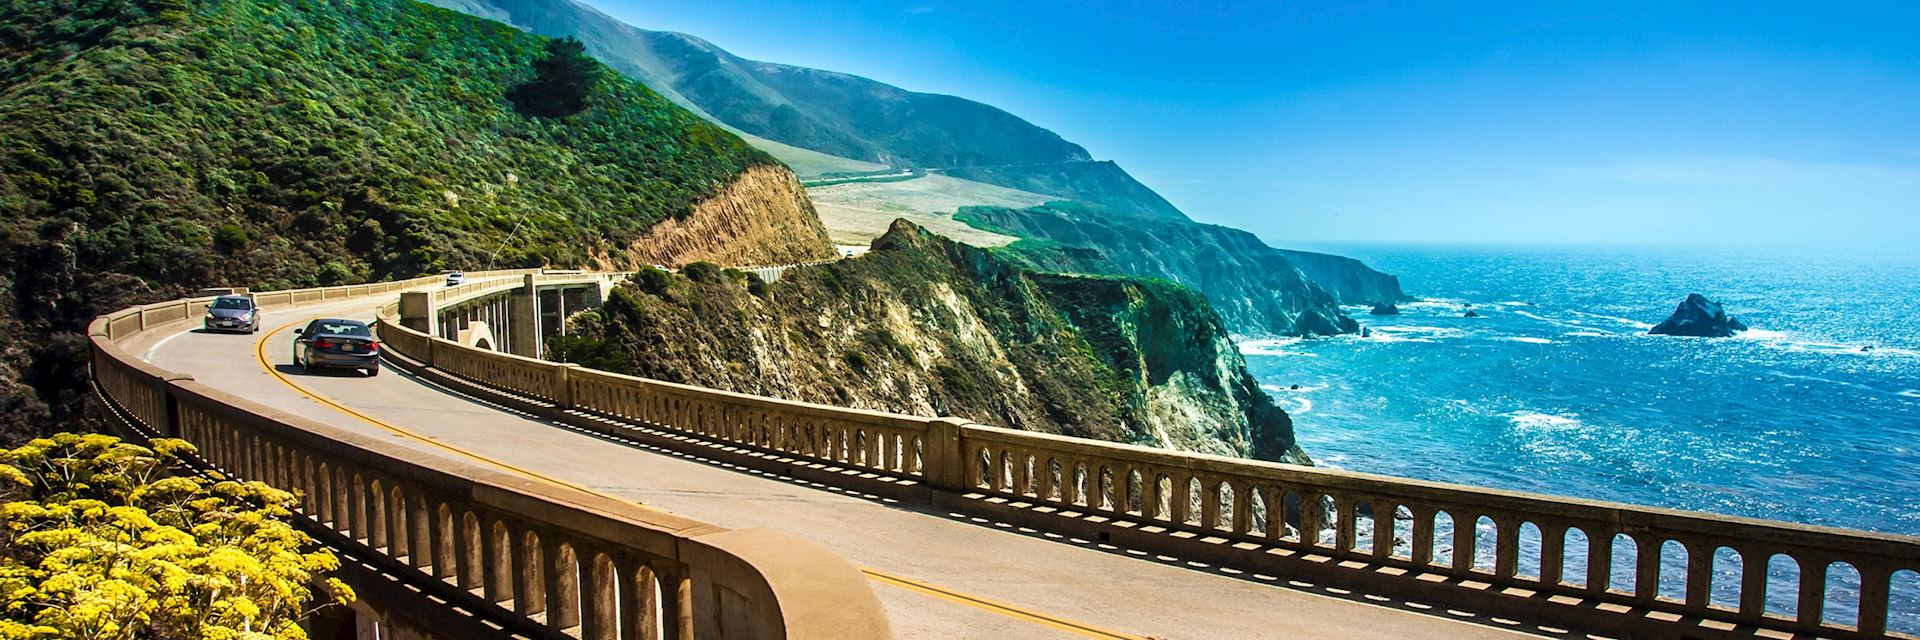 Bixby Creek Bridge om California's Pacific Coast Highway